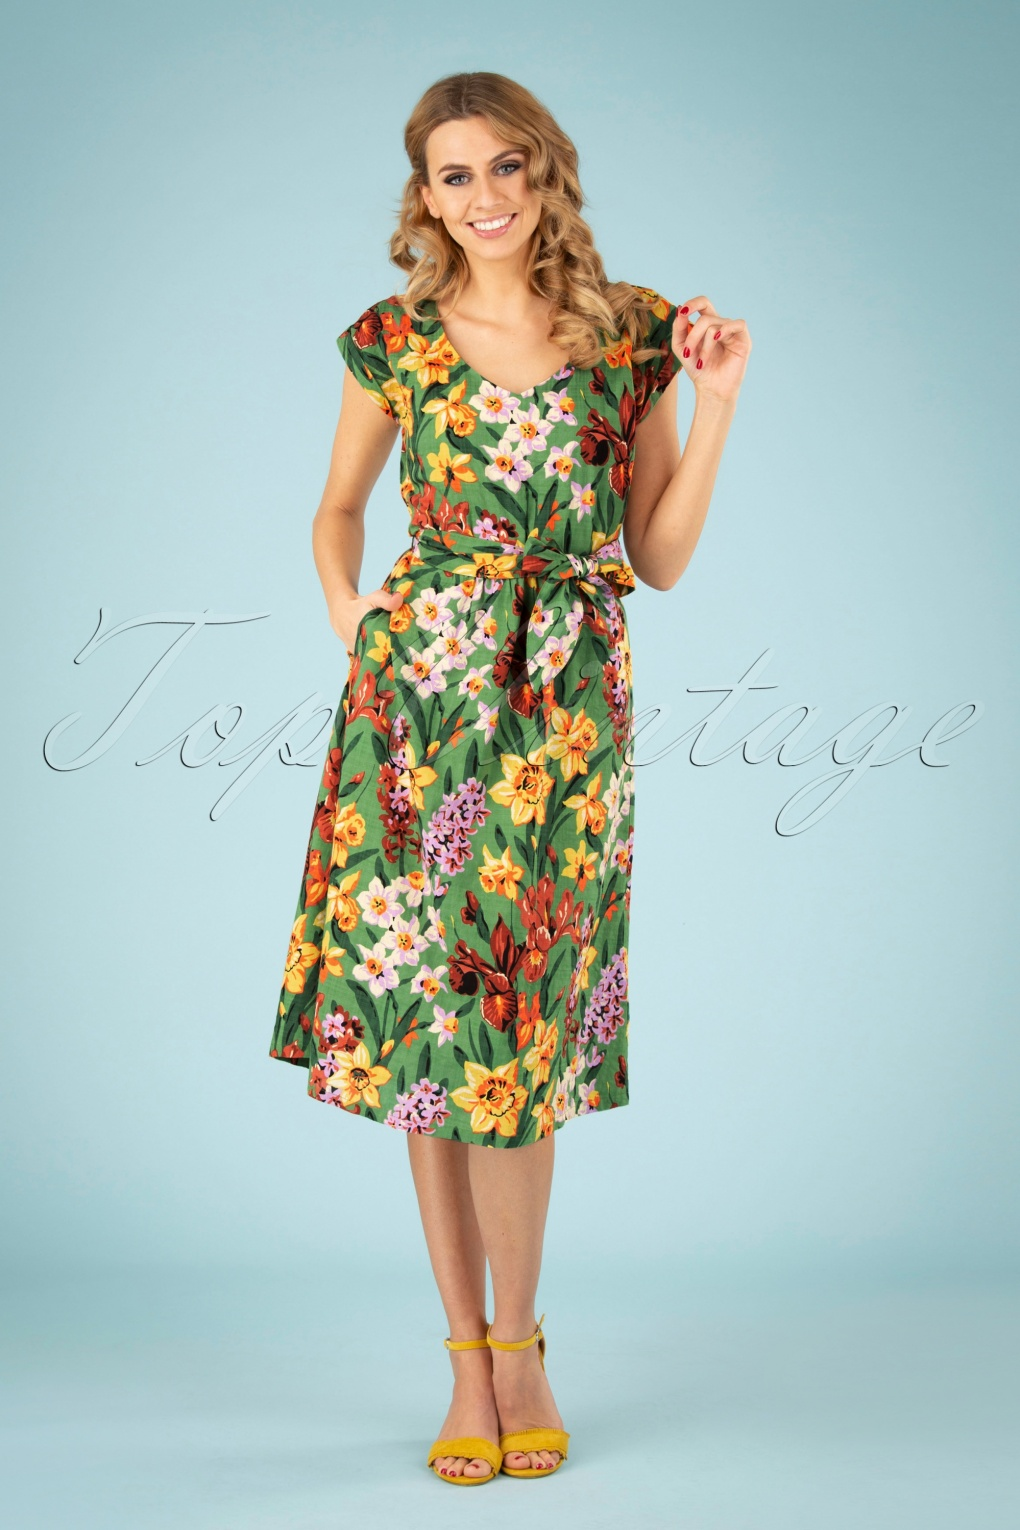 60s Dresses | 1960s Dresses Mod, Mini, Hippie 60s Vera Tula Loose Fit Dress in Jungle Green £19.95 AT vintagedancer.com